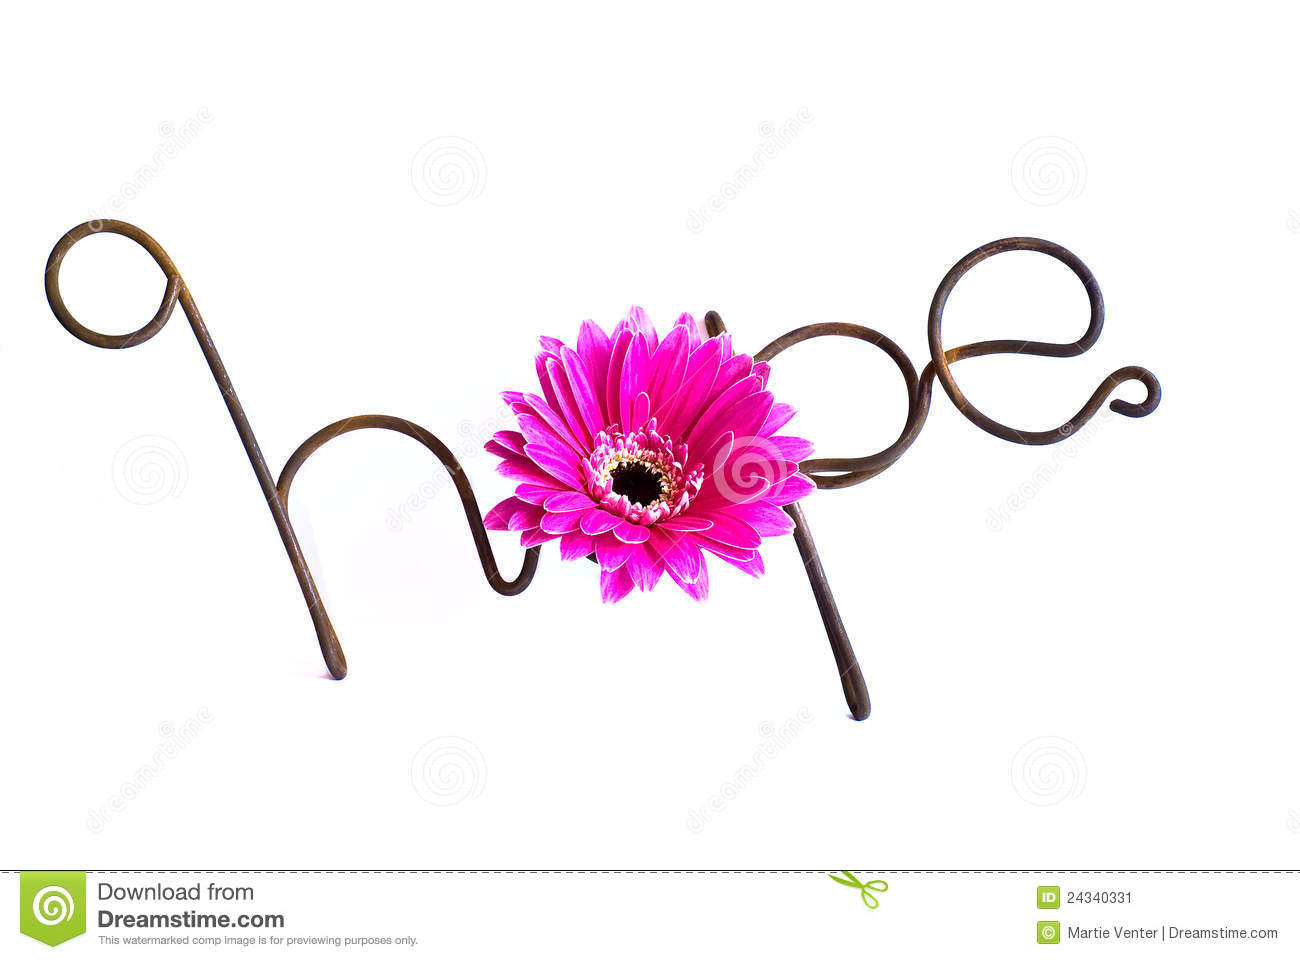 Strong's Greek: 1680. ἐλπίς (elpis) -- expectation, hope